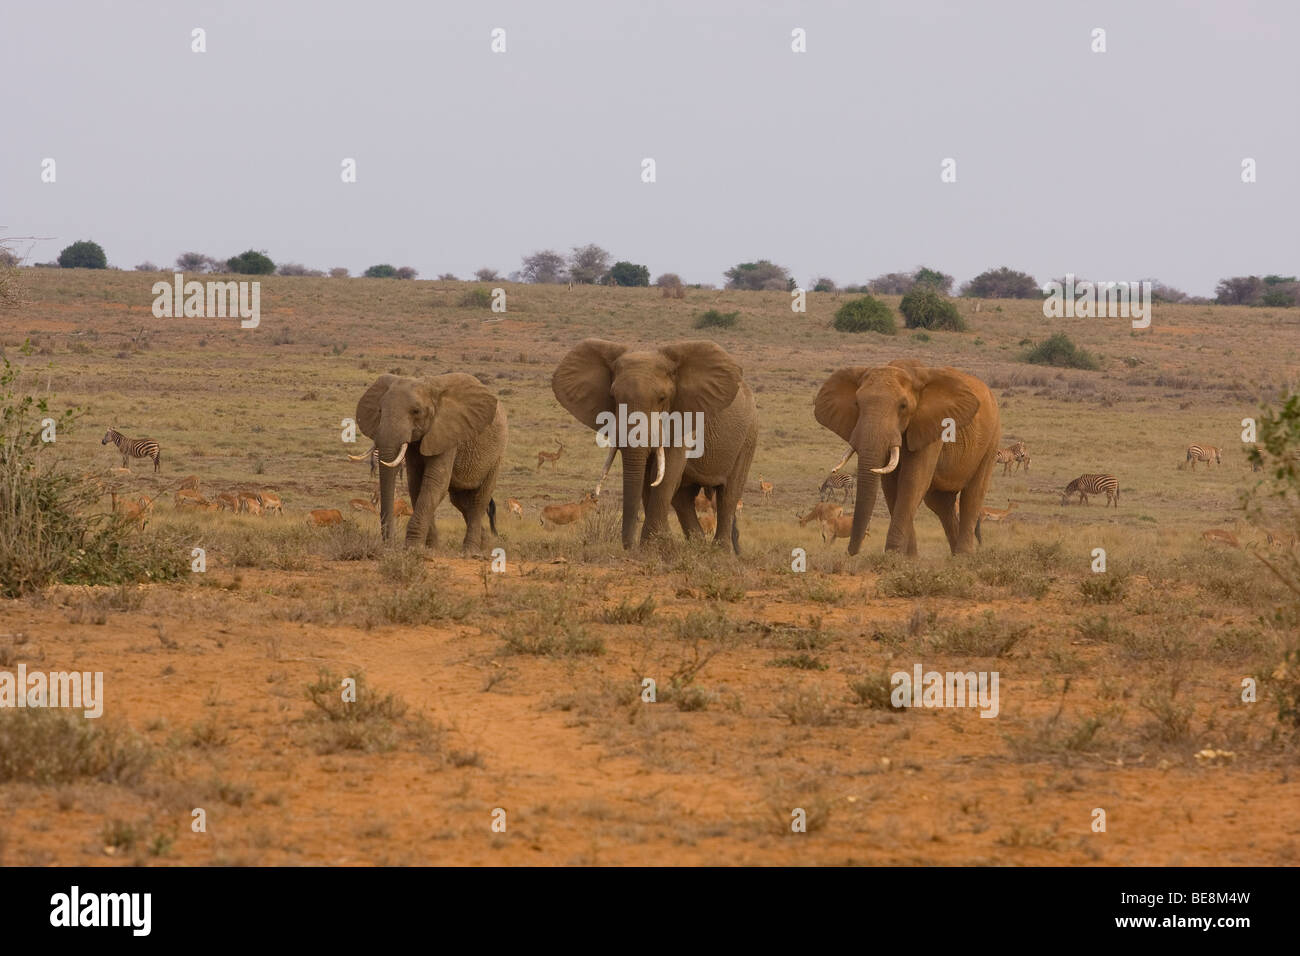 3 different sized elephants walking together in a line